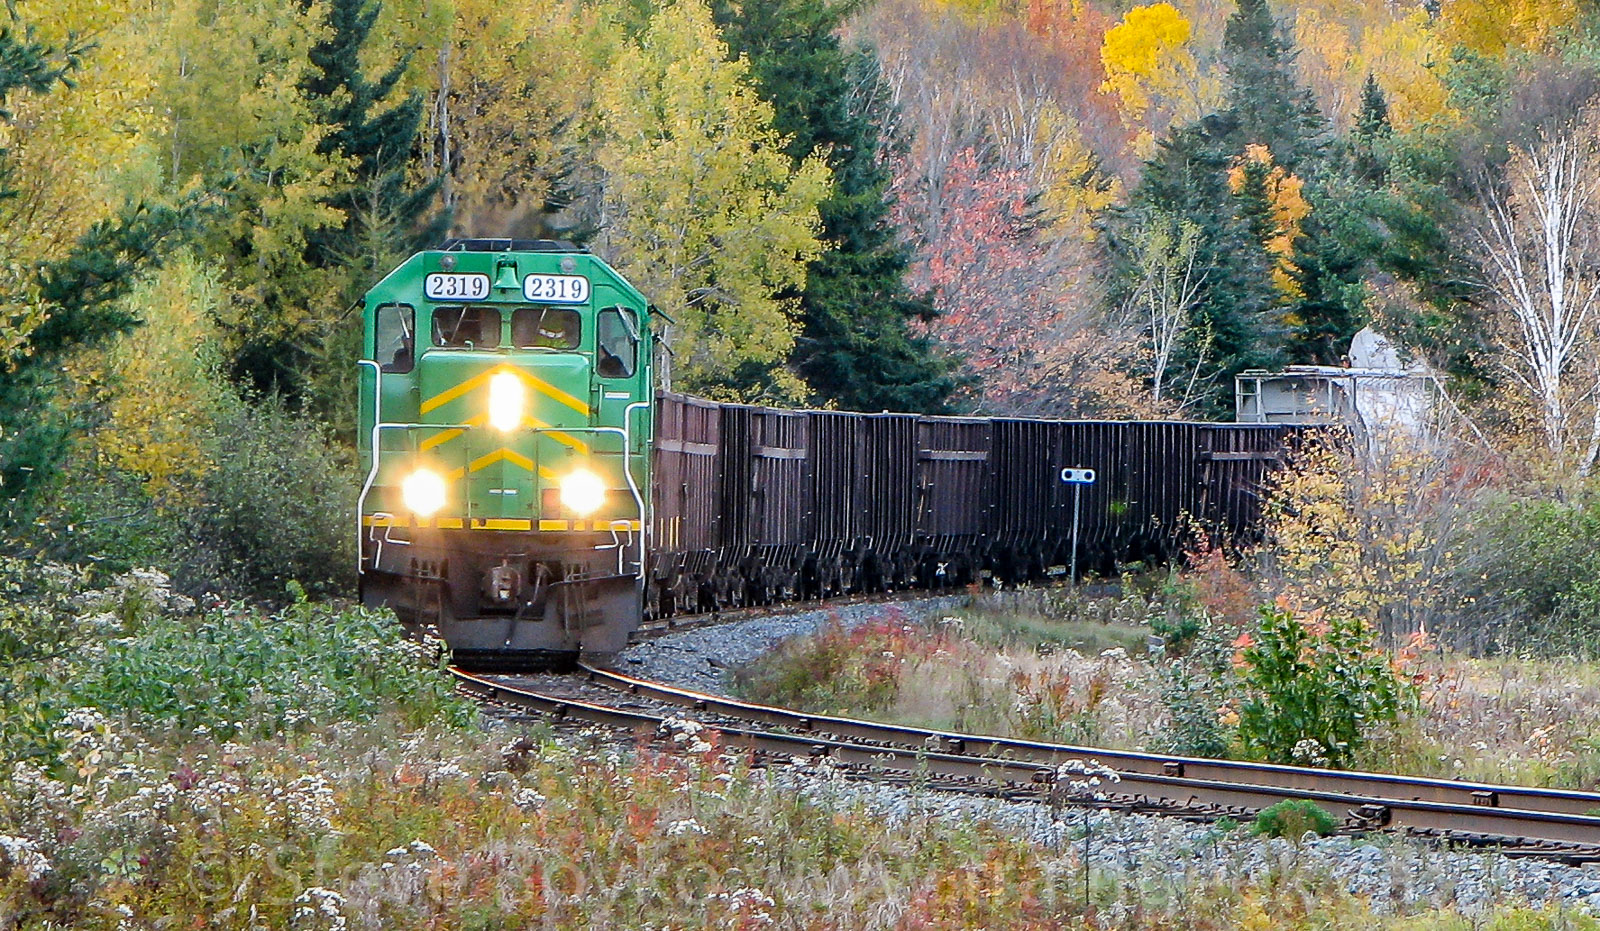 NBSR 2319 and 2317 in Welsford, NB, Oct 2008